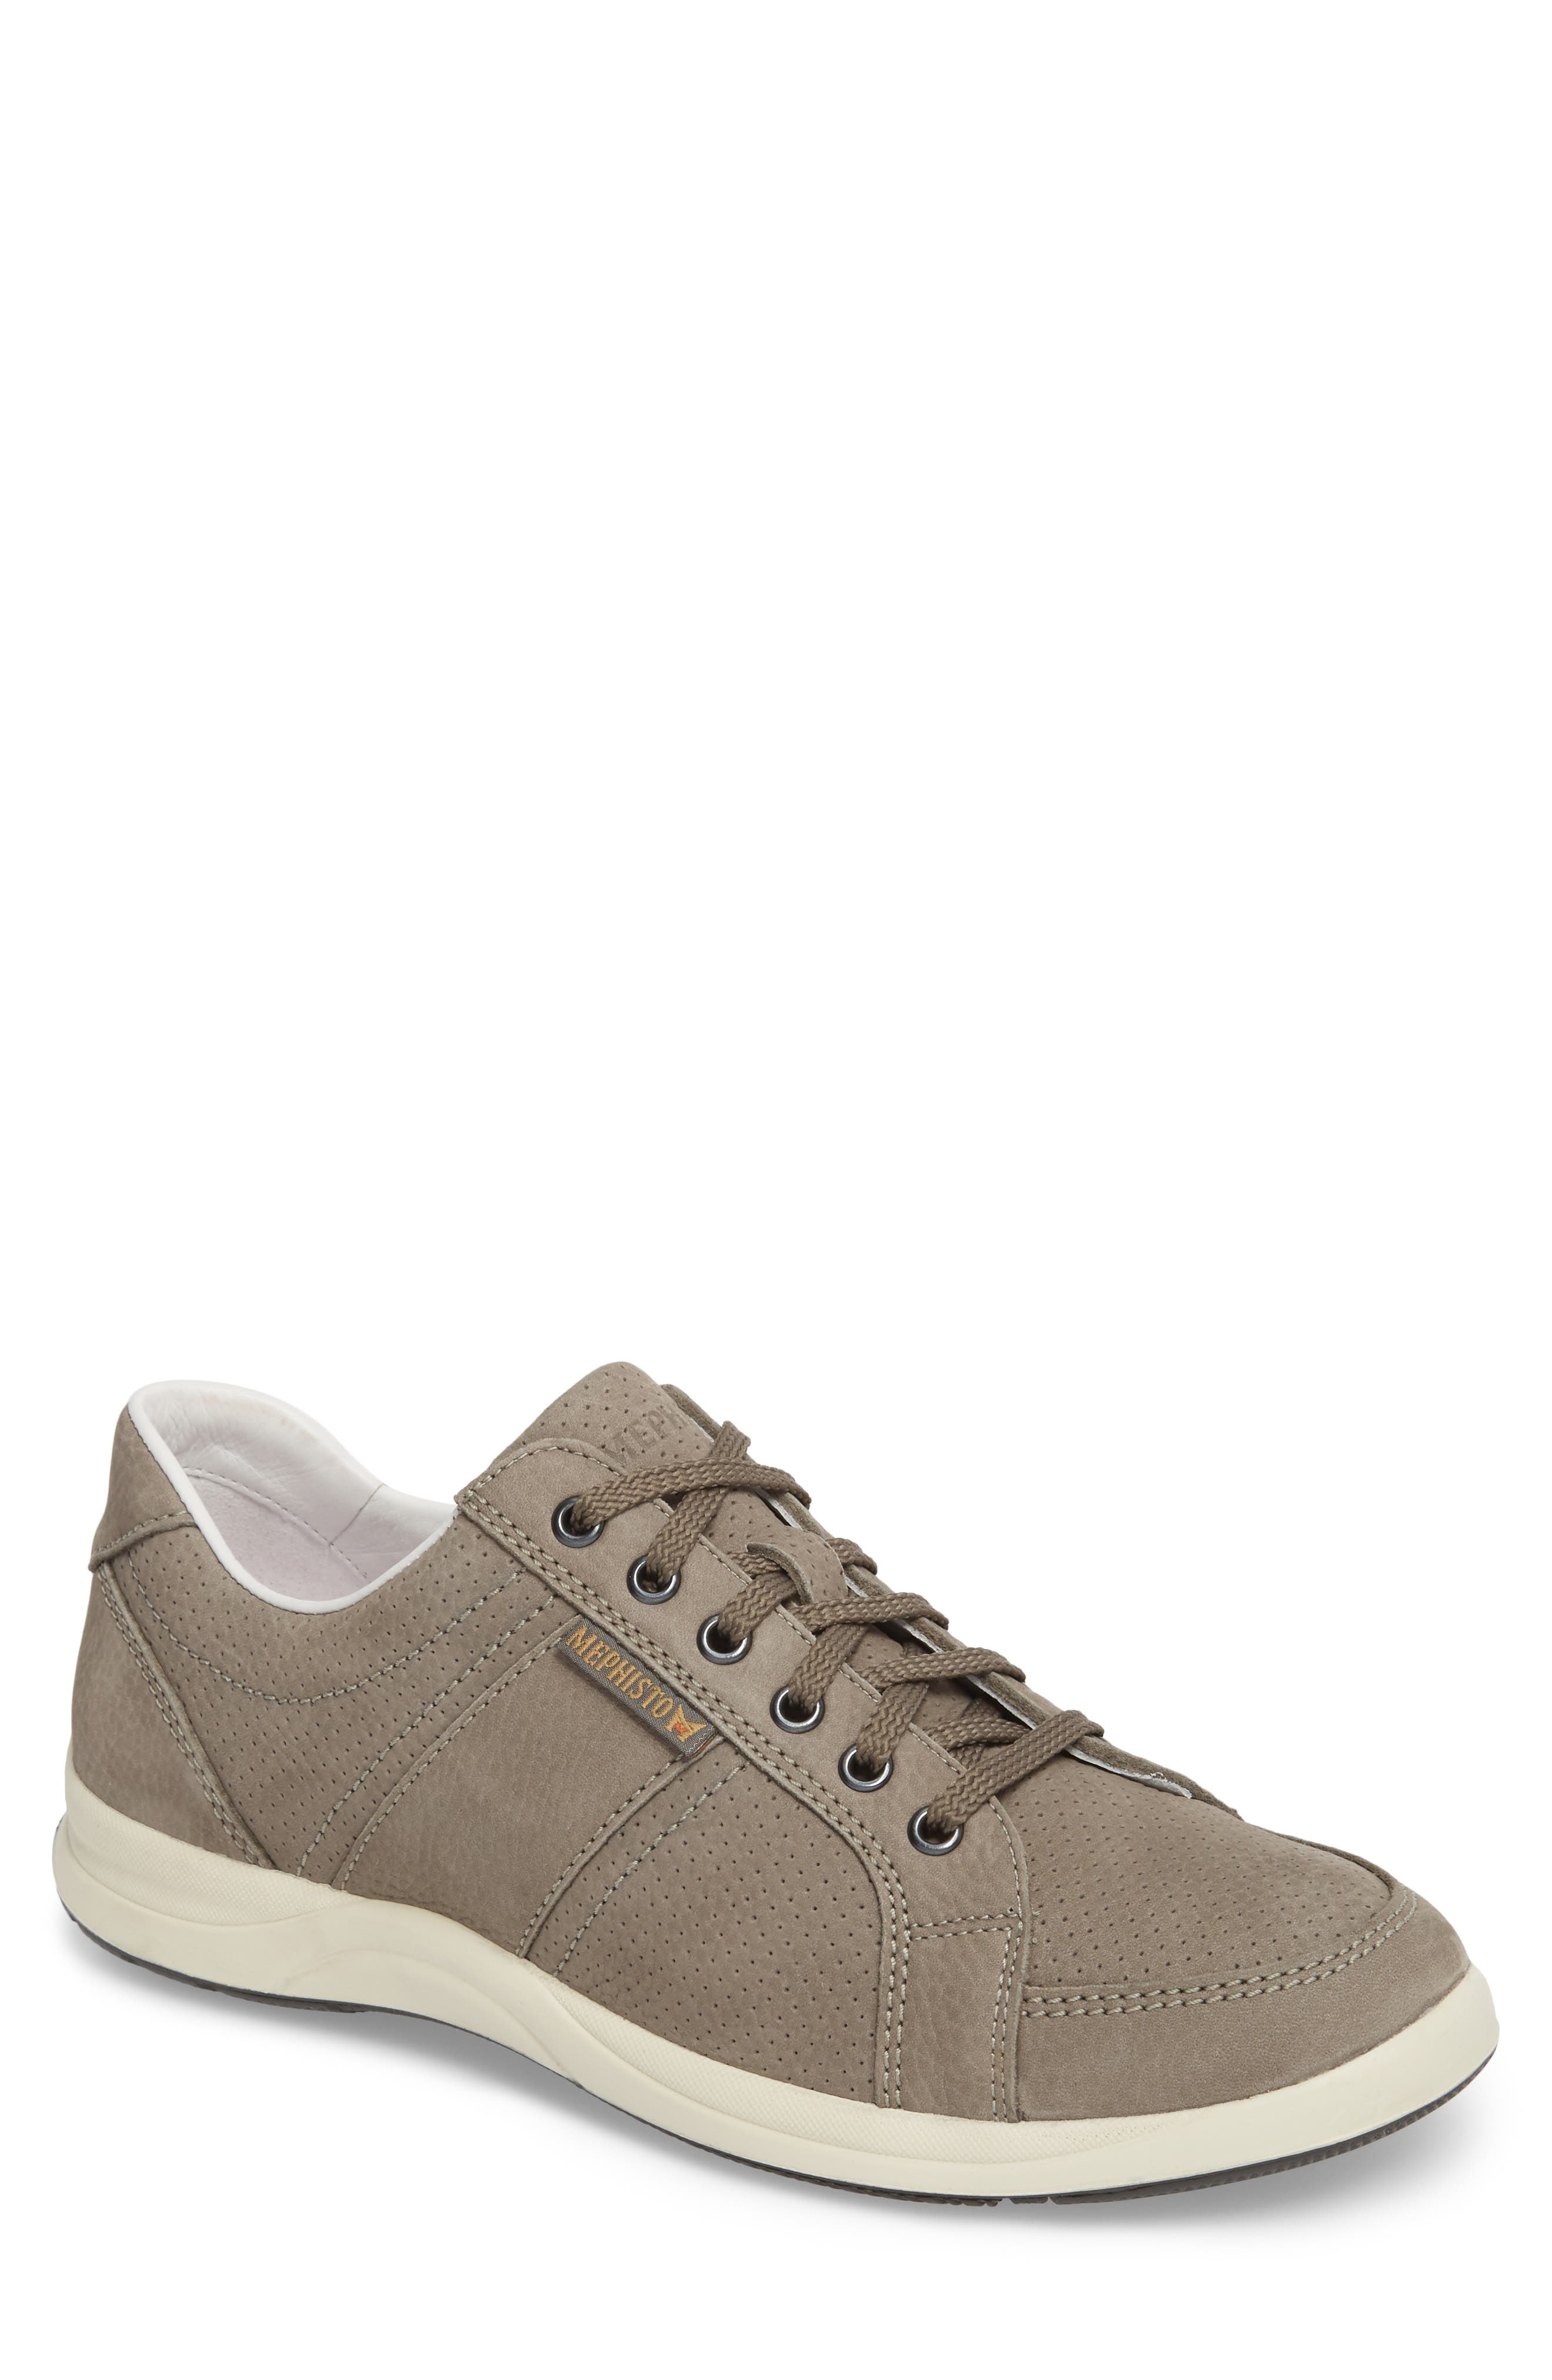 'Hero' Perforated Sneaker,                             Main thumbnail 1, color,                             GREY LEATHER